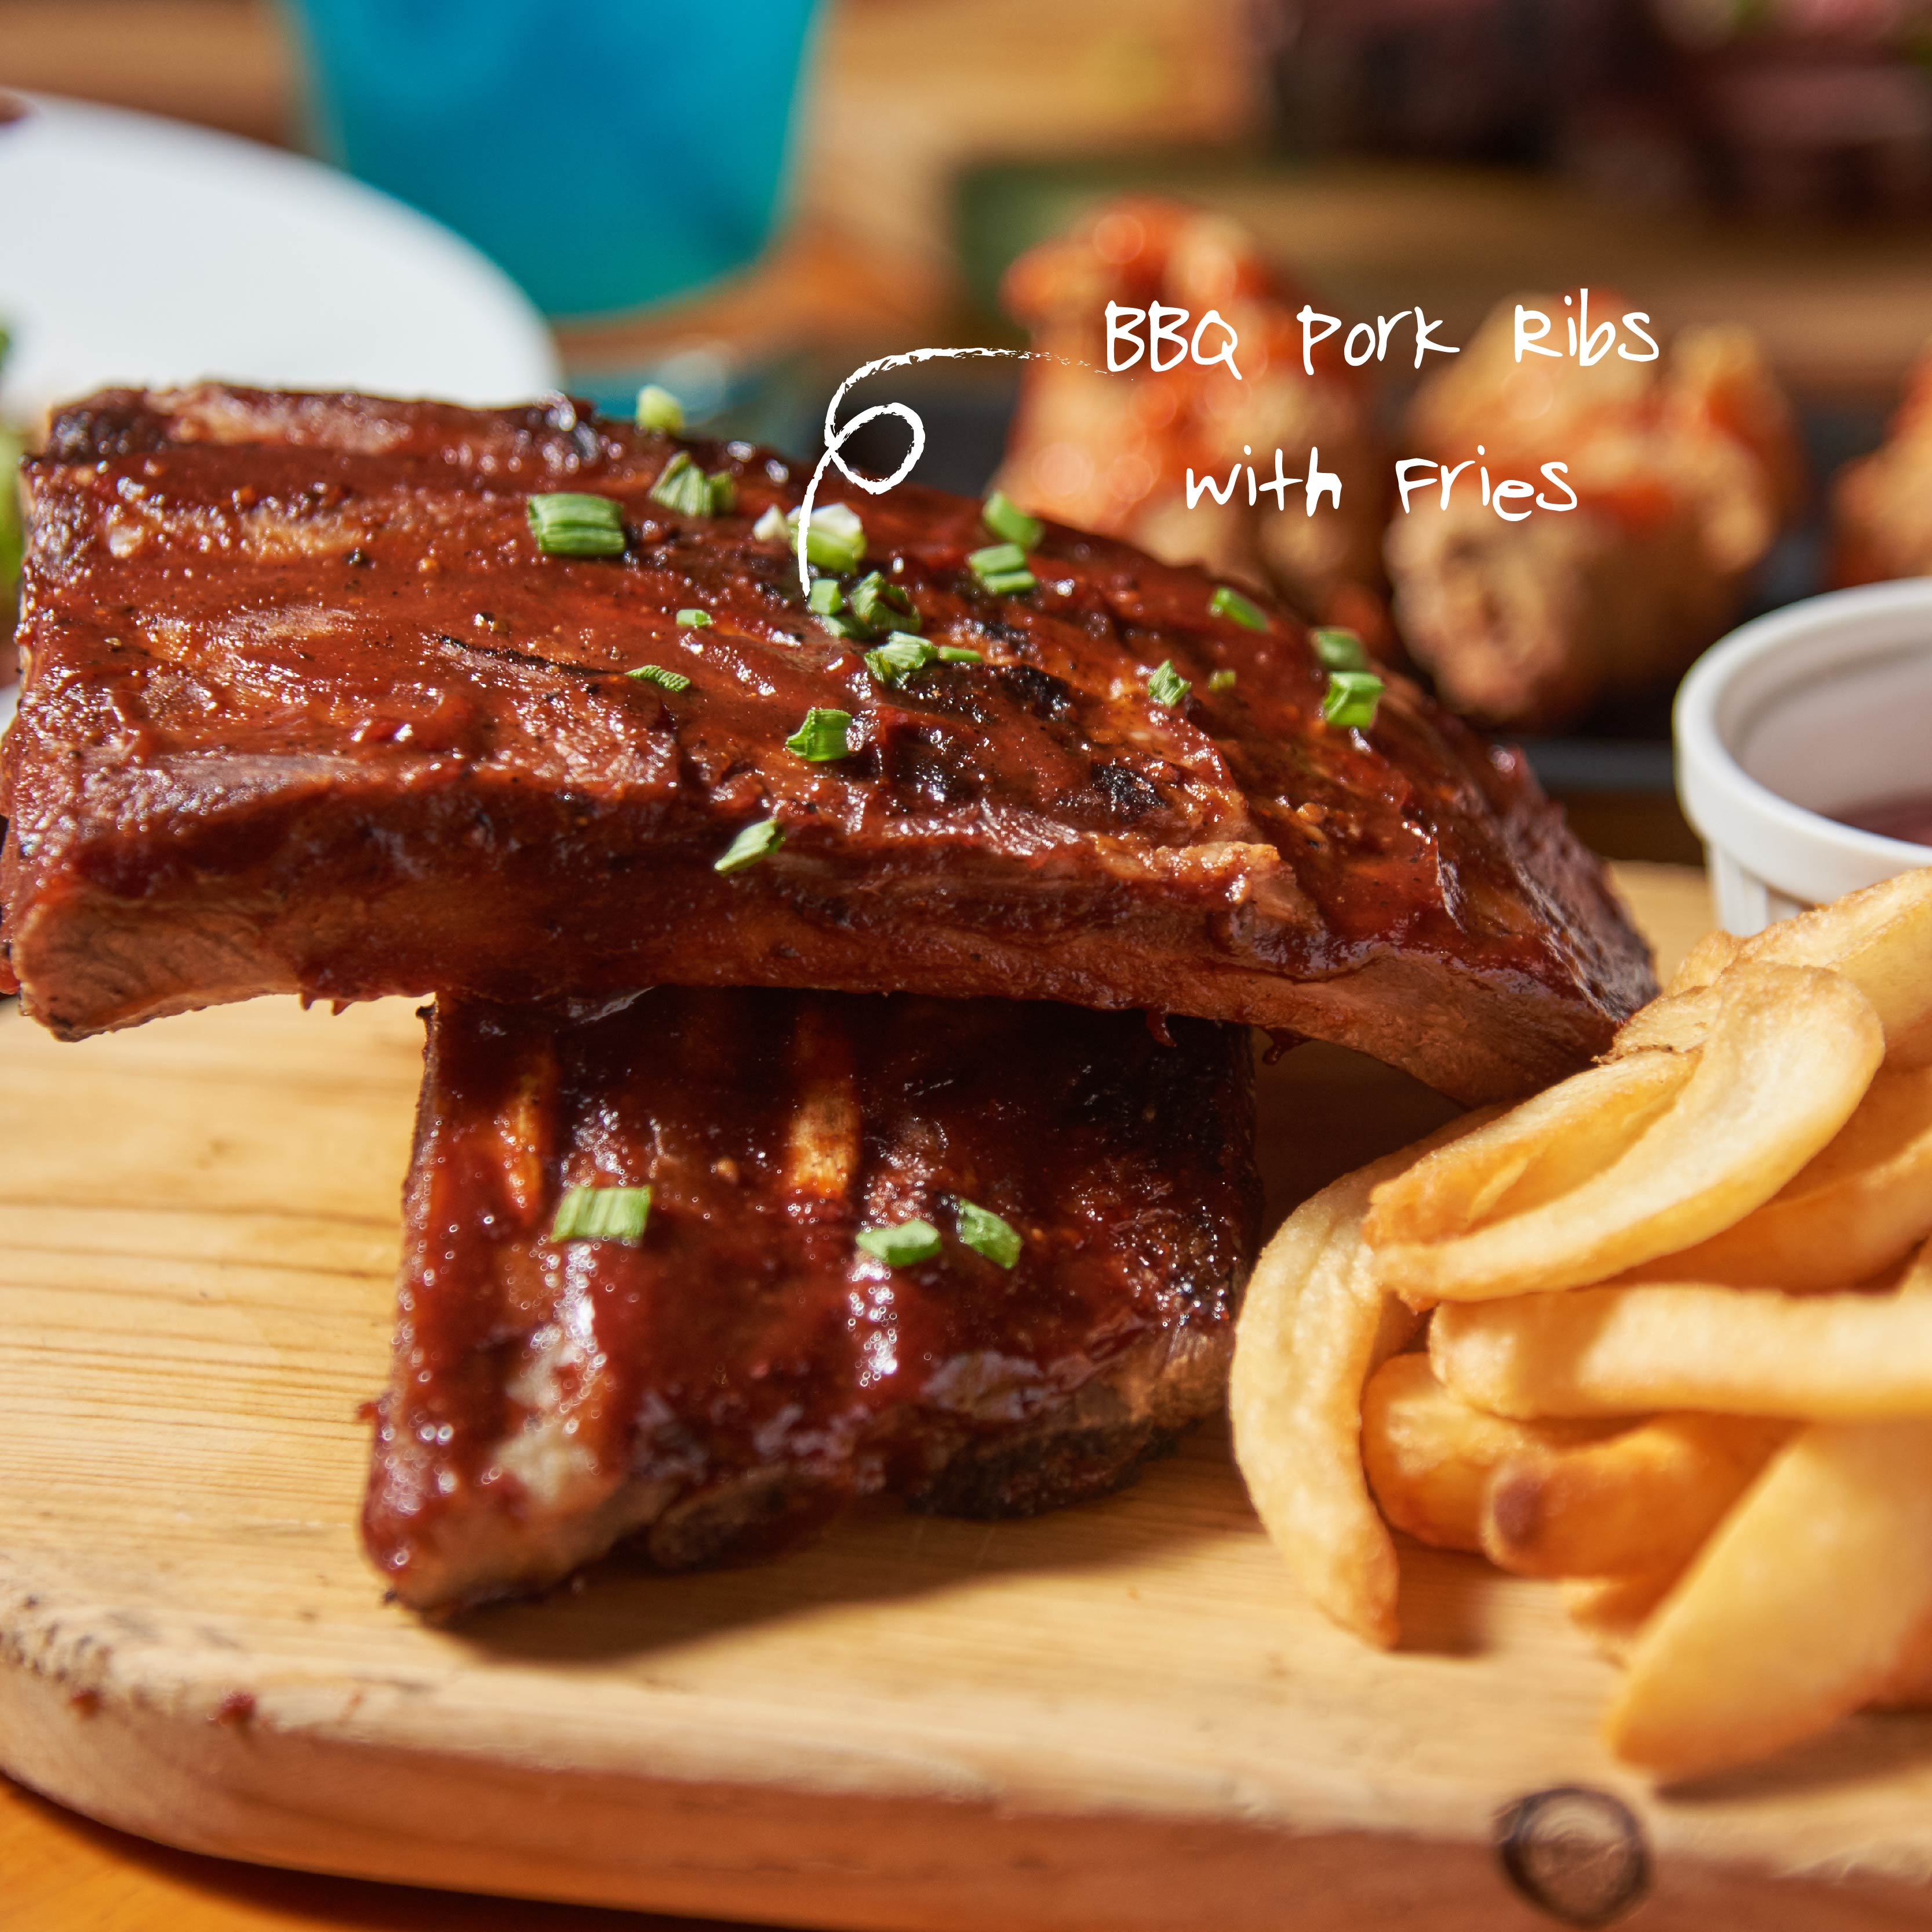 BBQ Pork Ribs with Fries